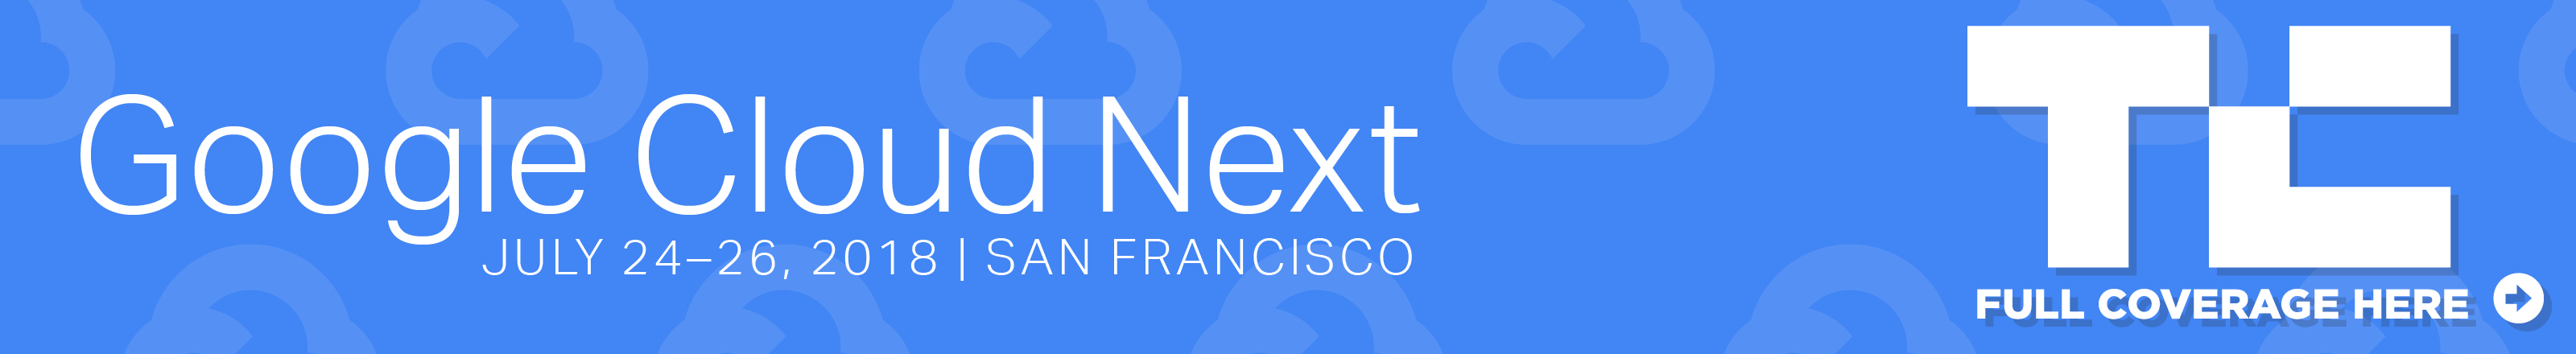 google cloud next 2018 banner 2